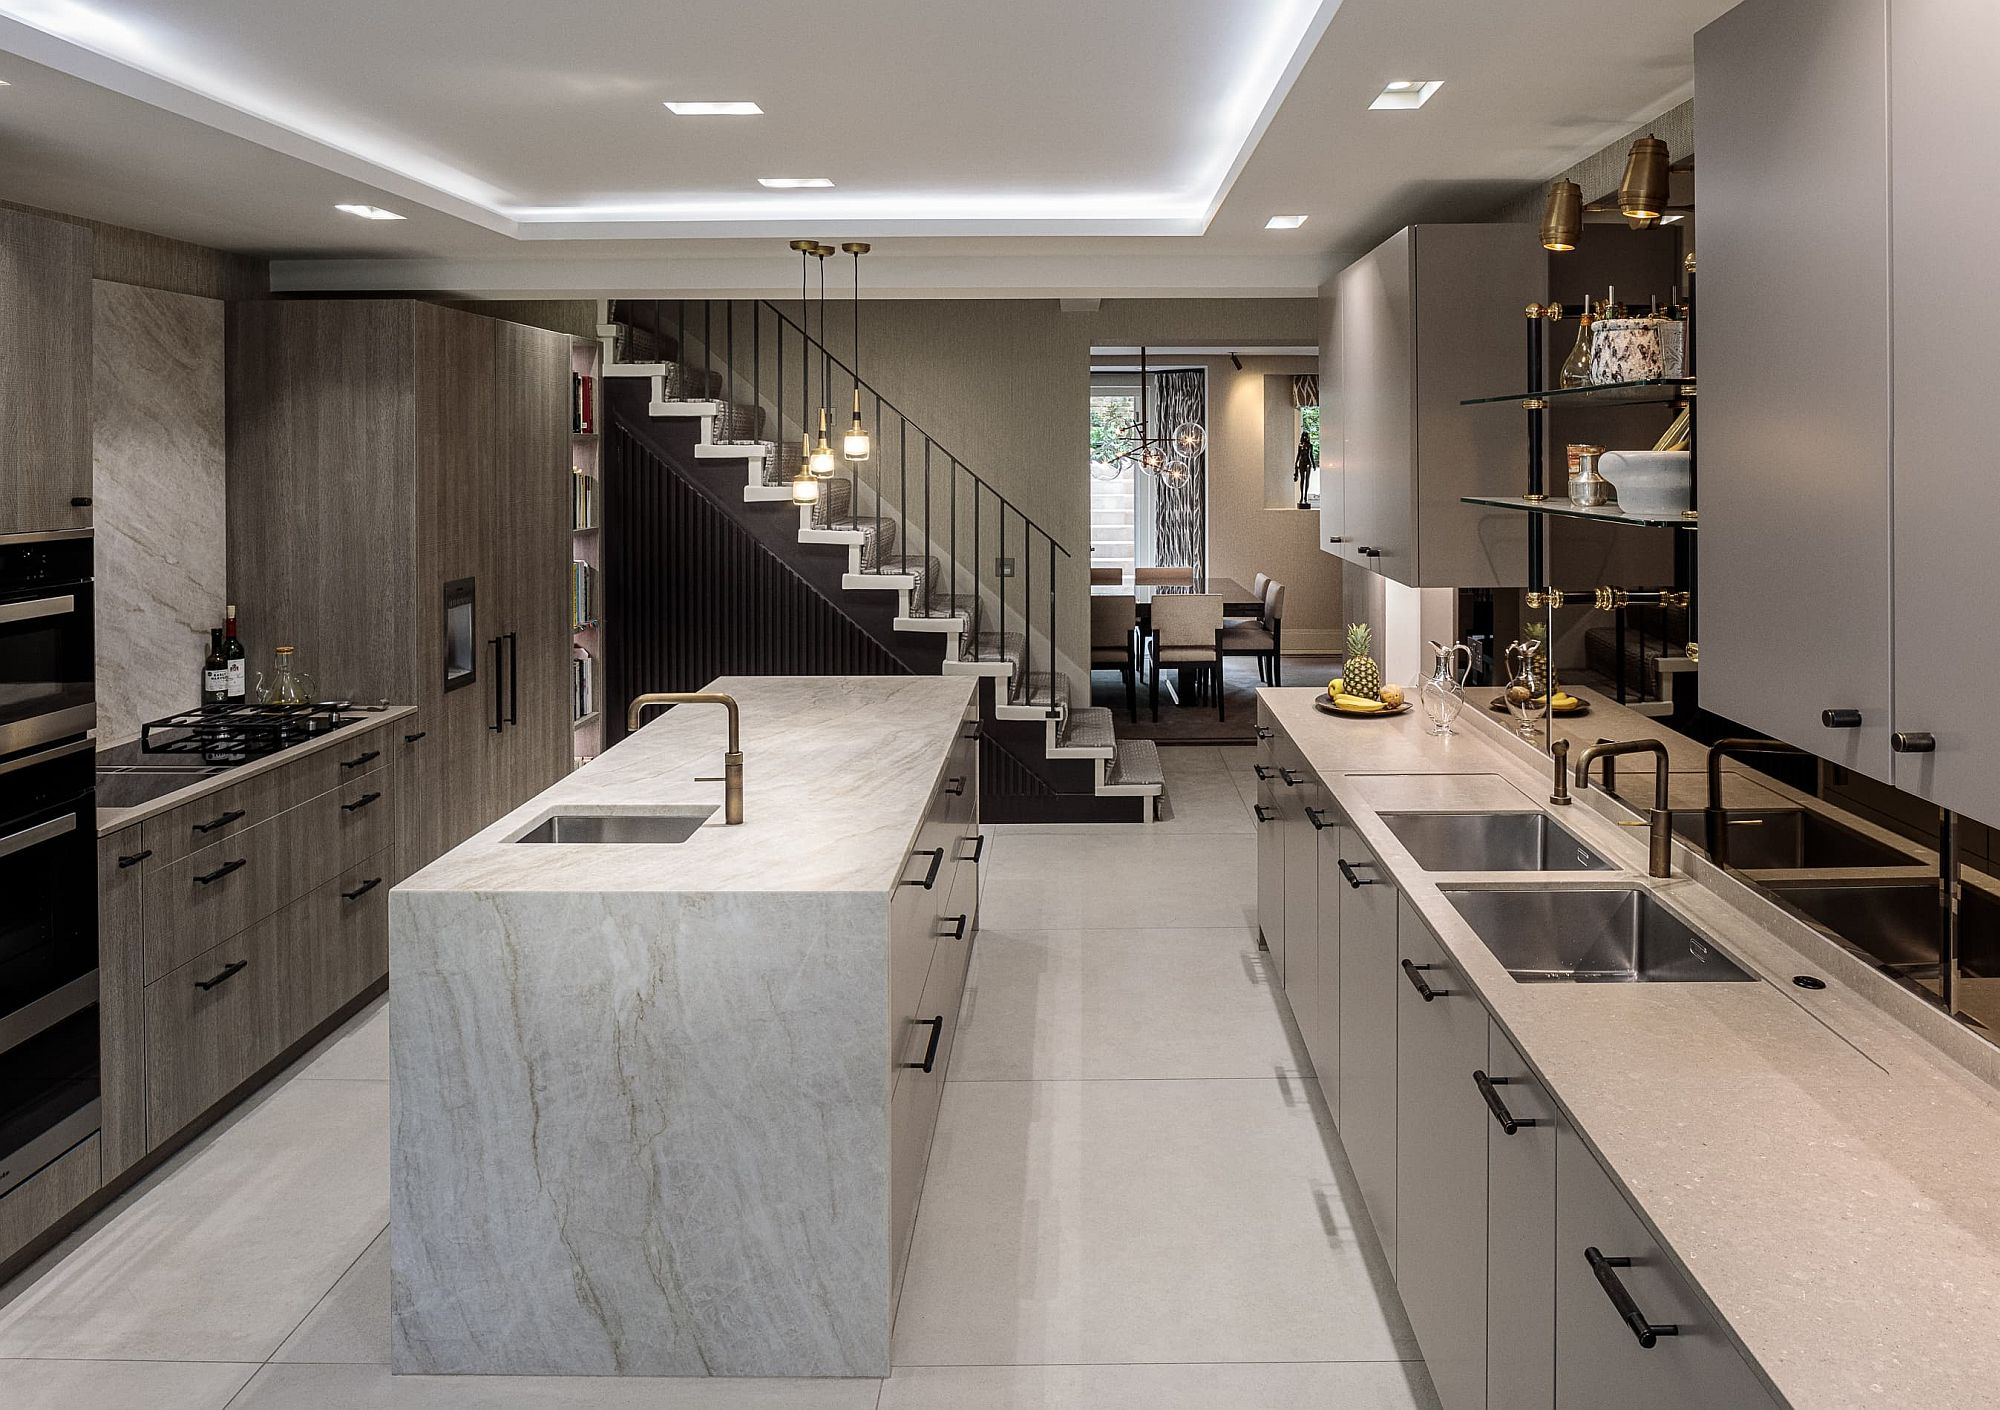 Lovely lighting foe the modern kitchen in white and gray